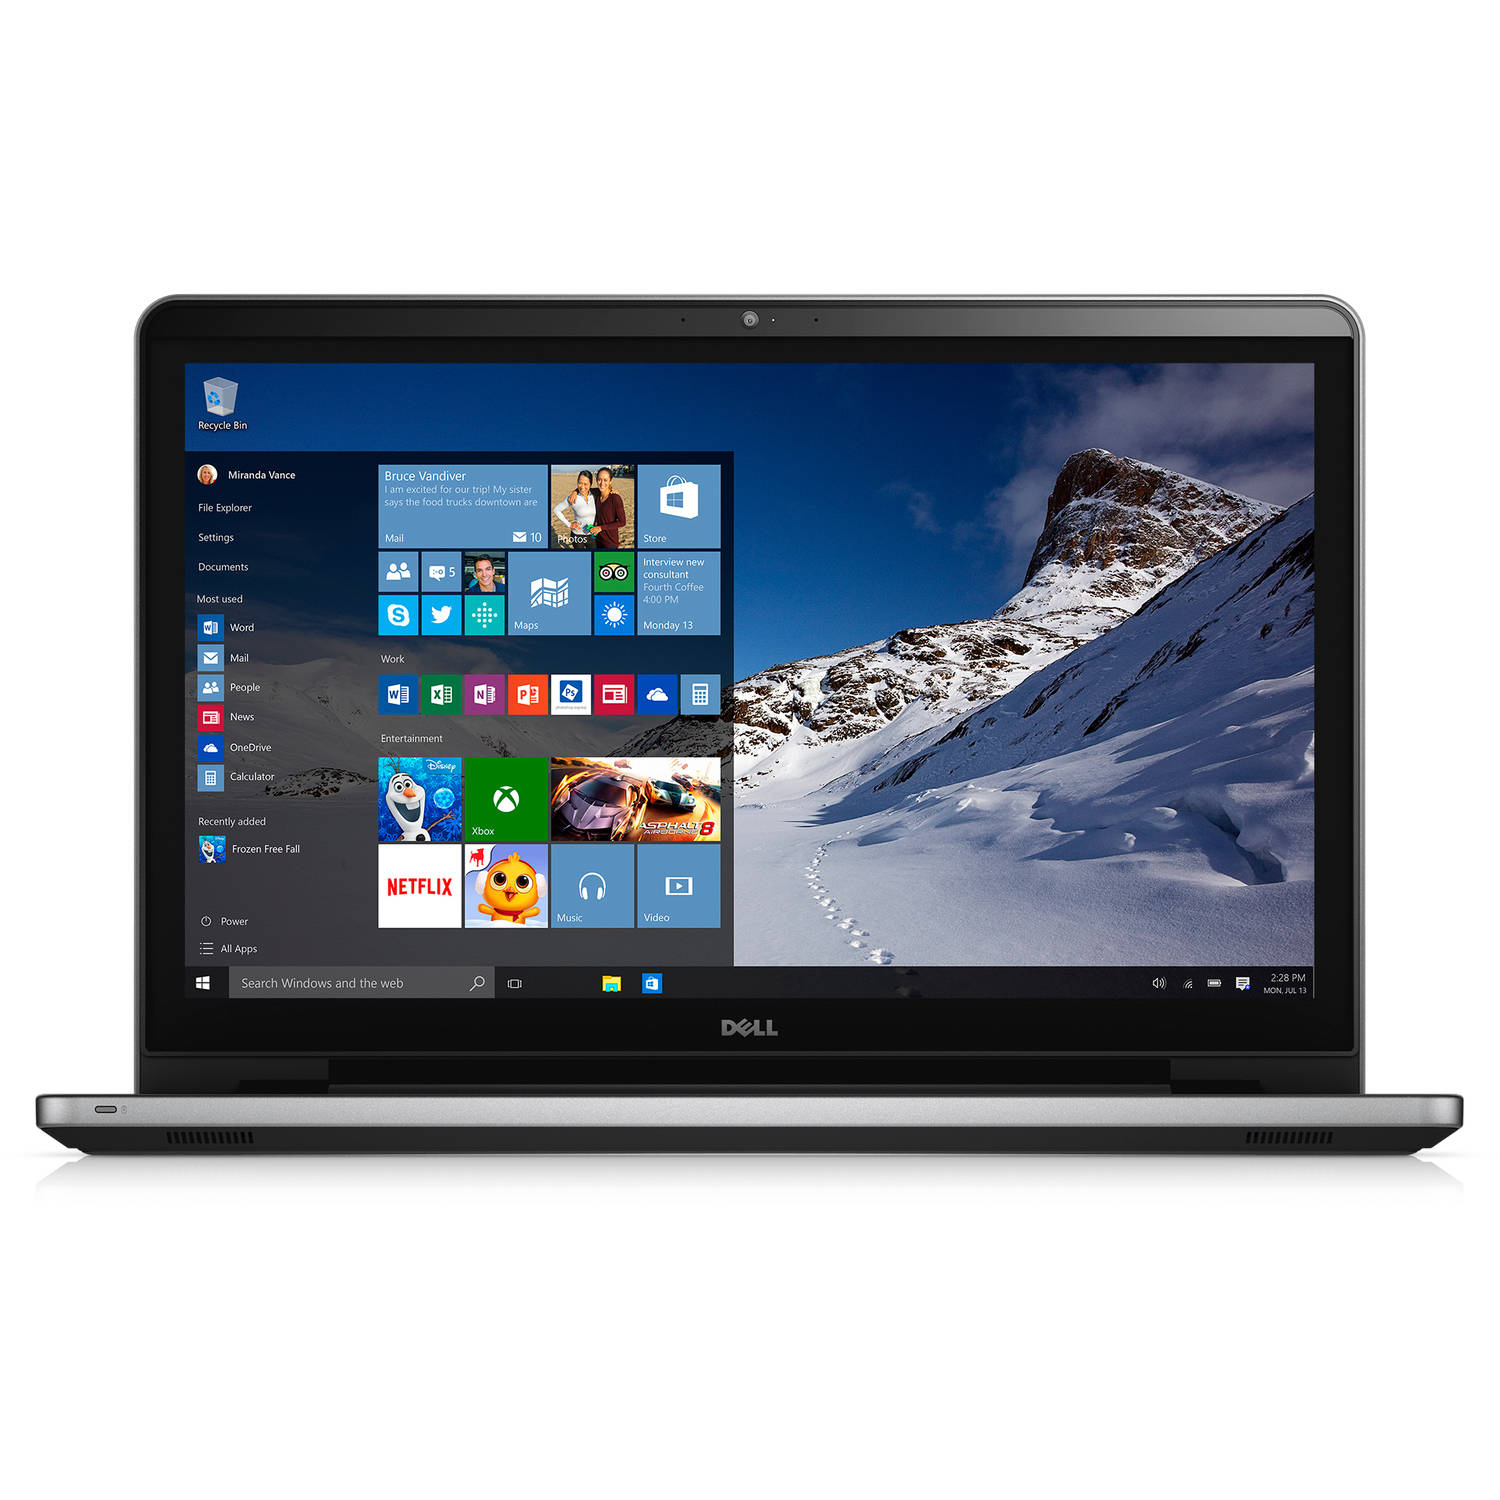 "Dell Silver 17.3"" Inspiron 5759 Laptop PC with Intel Core..."